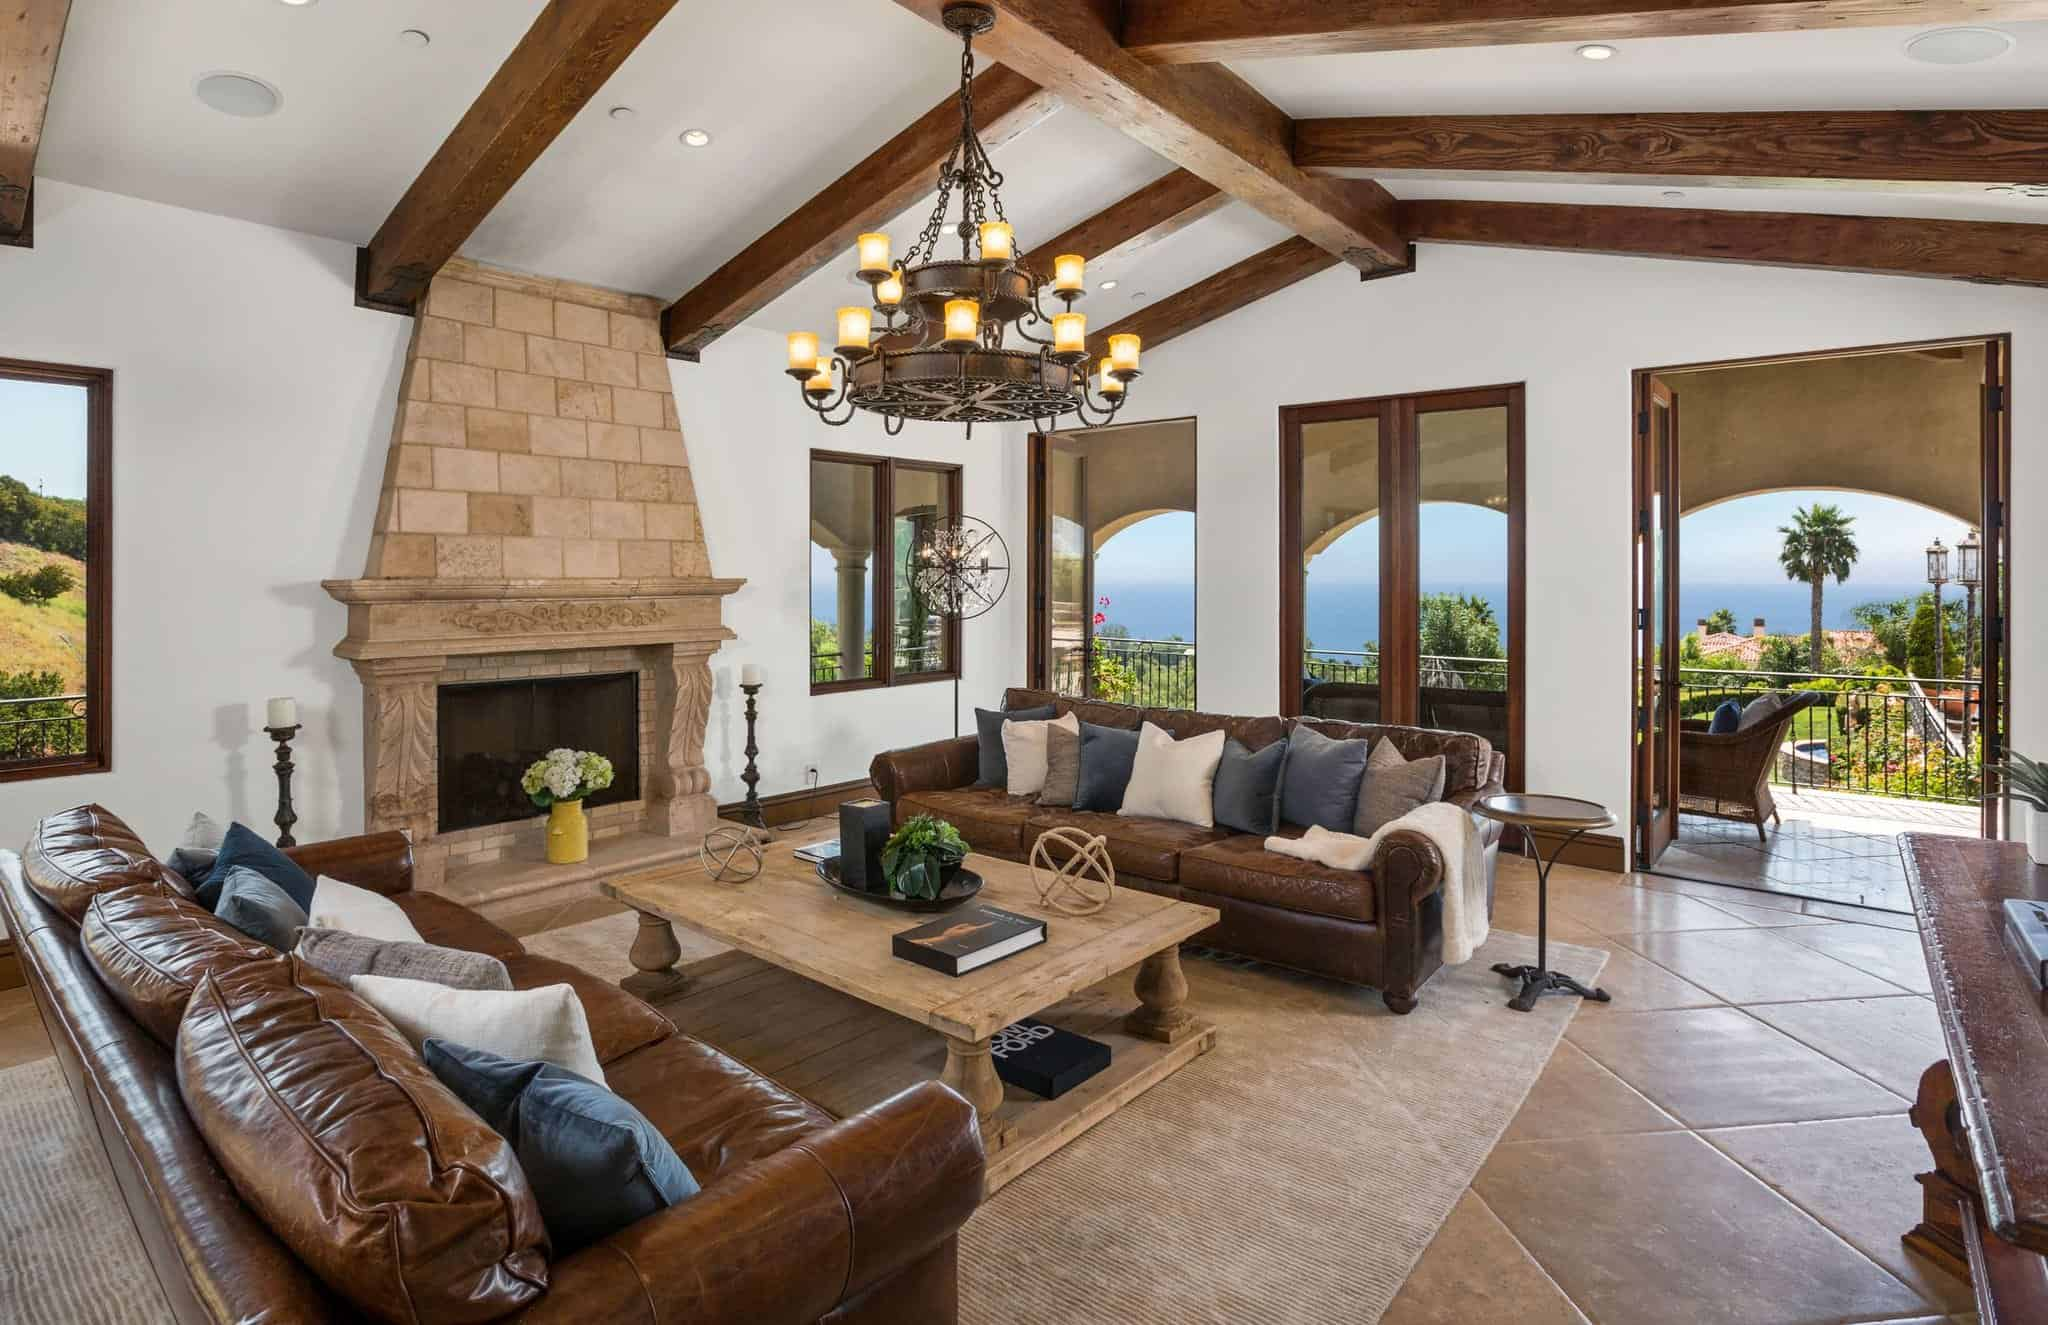 A Mediterranean living room with vaulted ceiling with beams and a set of brown leather couches near the fireplace lighted by a classy chandelier.